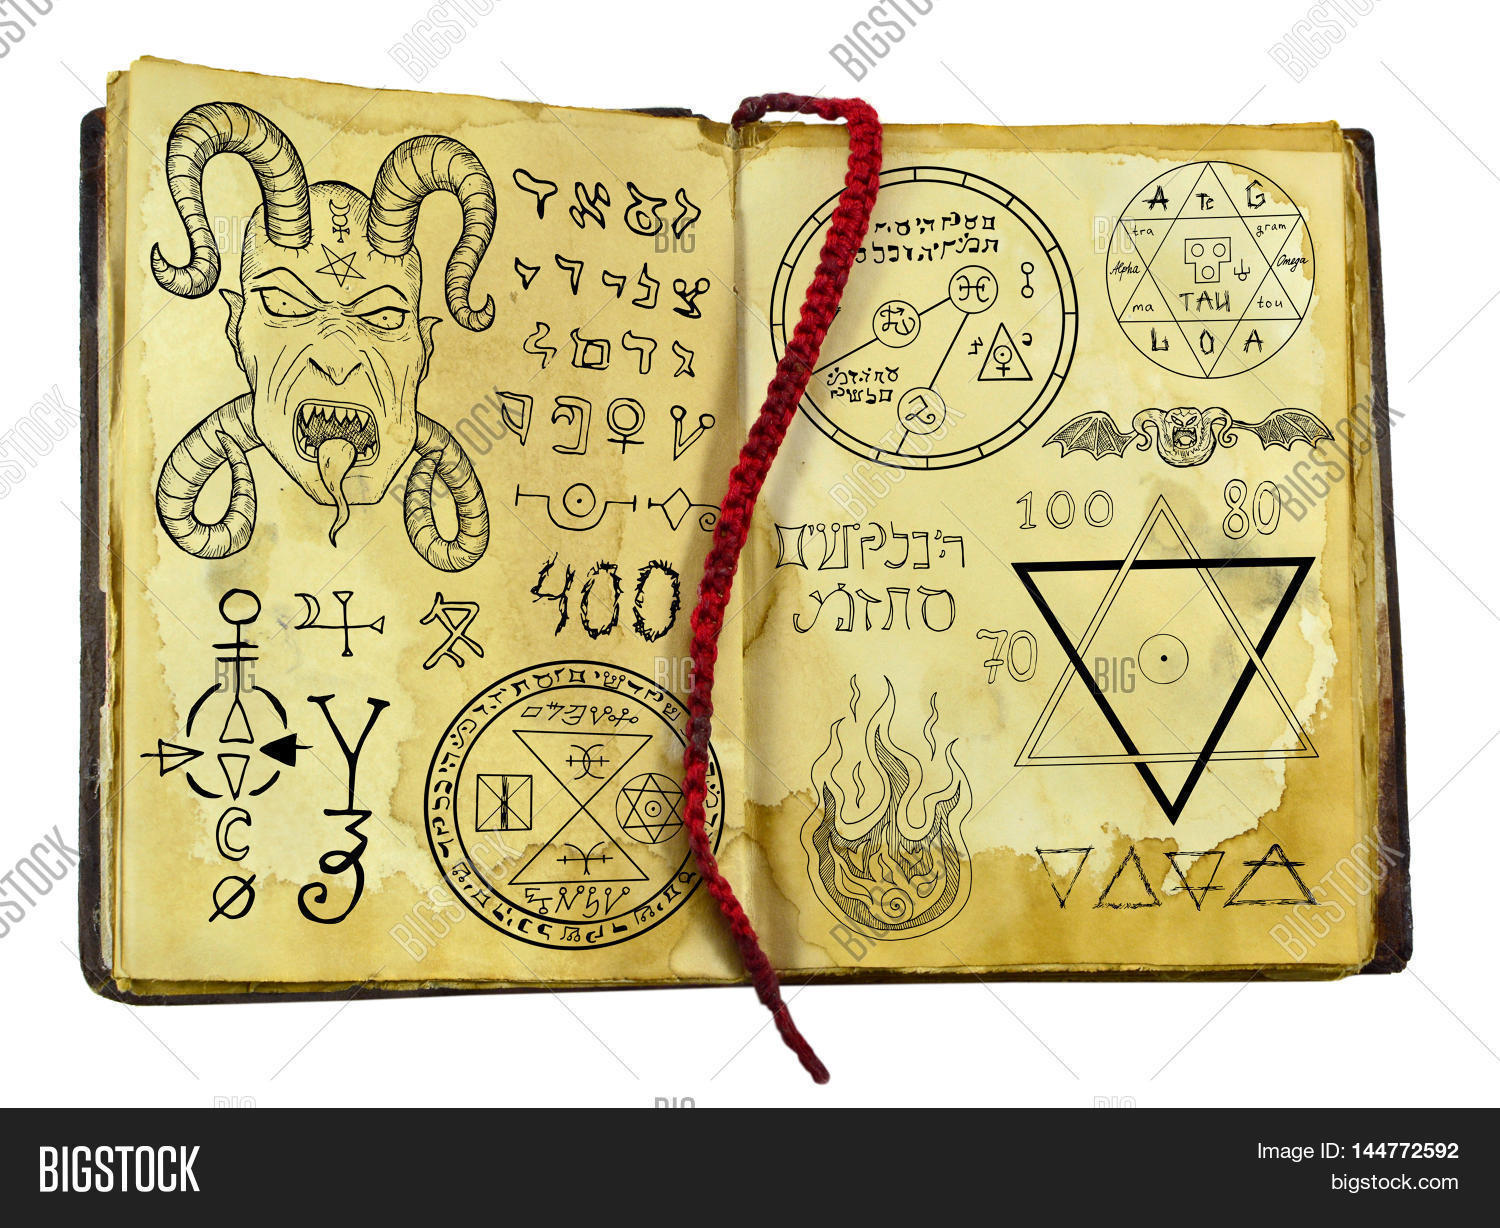 Old Witch Book Demon Image Photo Free Trial Bigstock